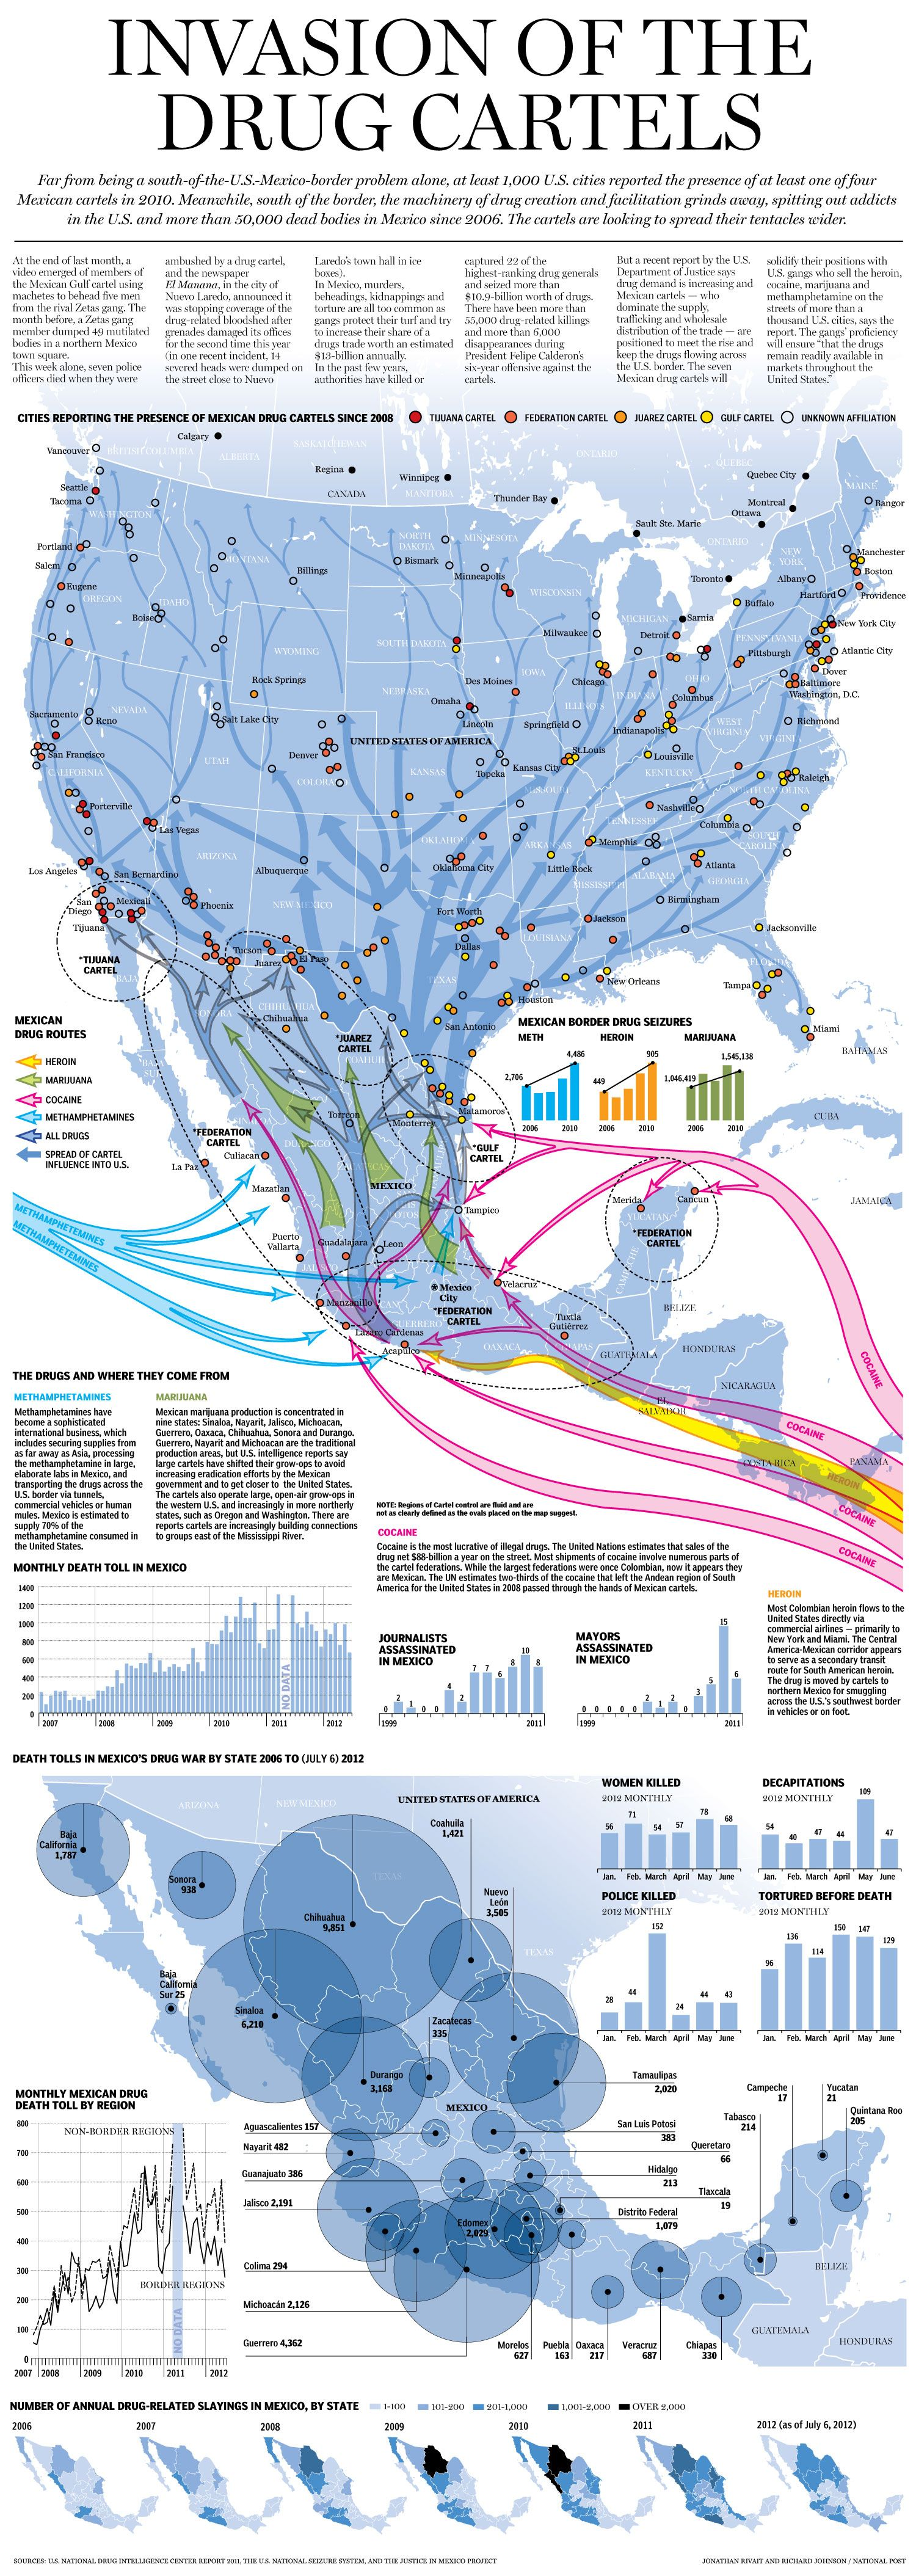 Mexican Drug Cartels' Spreading Influence - http://news.nationalpost.com/2012/07/13/mexican-drug-cartels-spreading-influence-graphic/